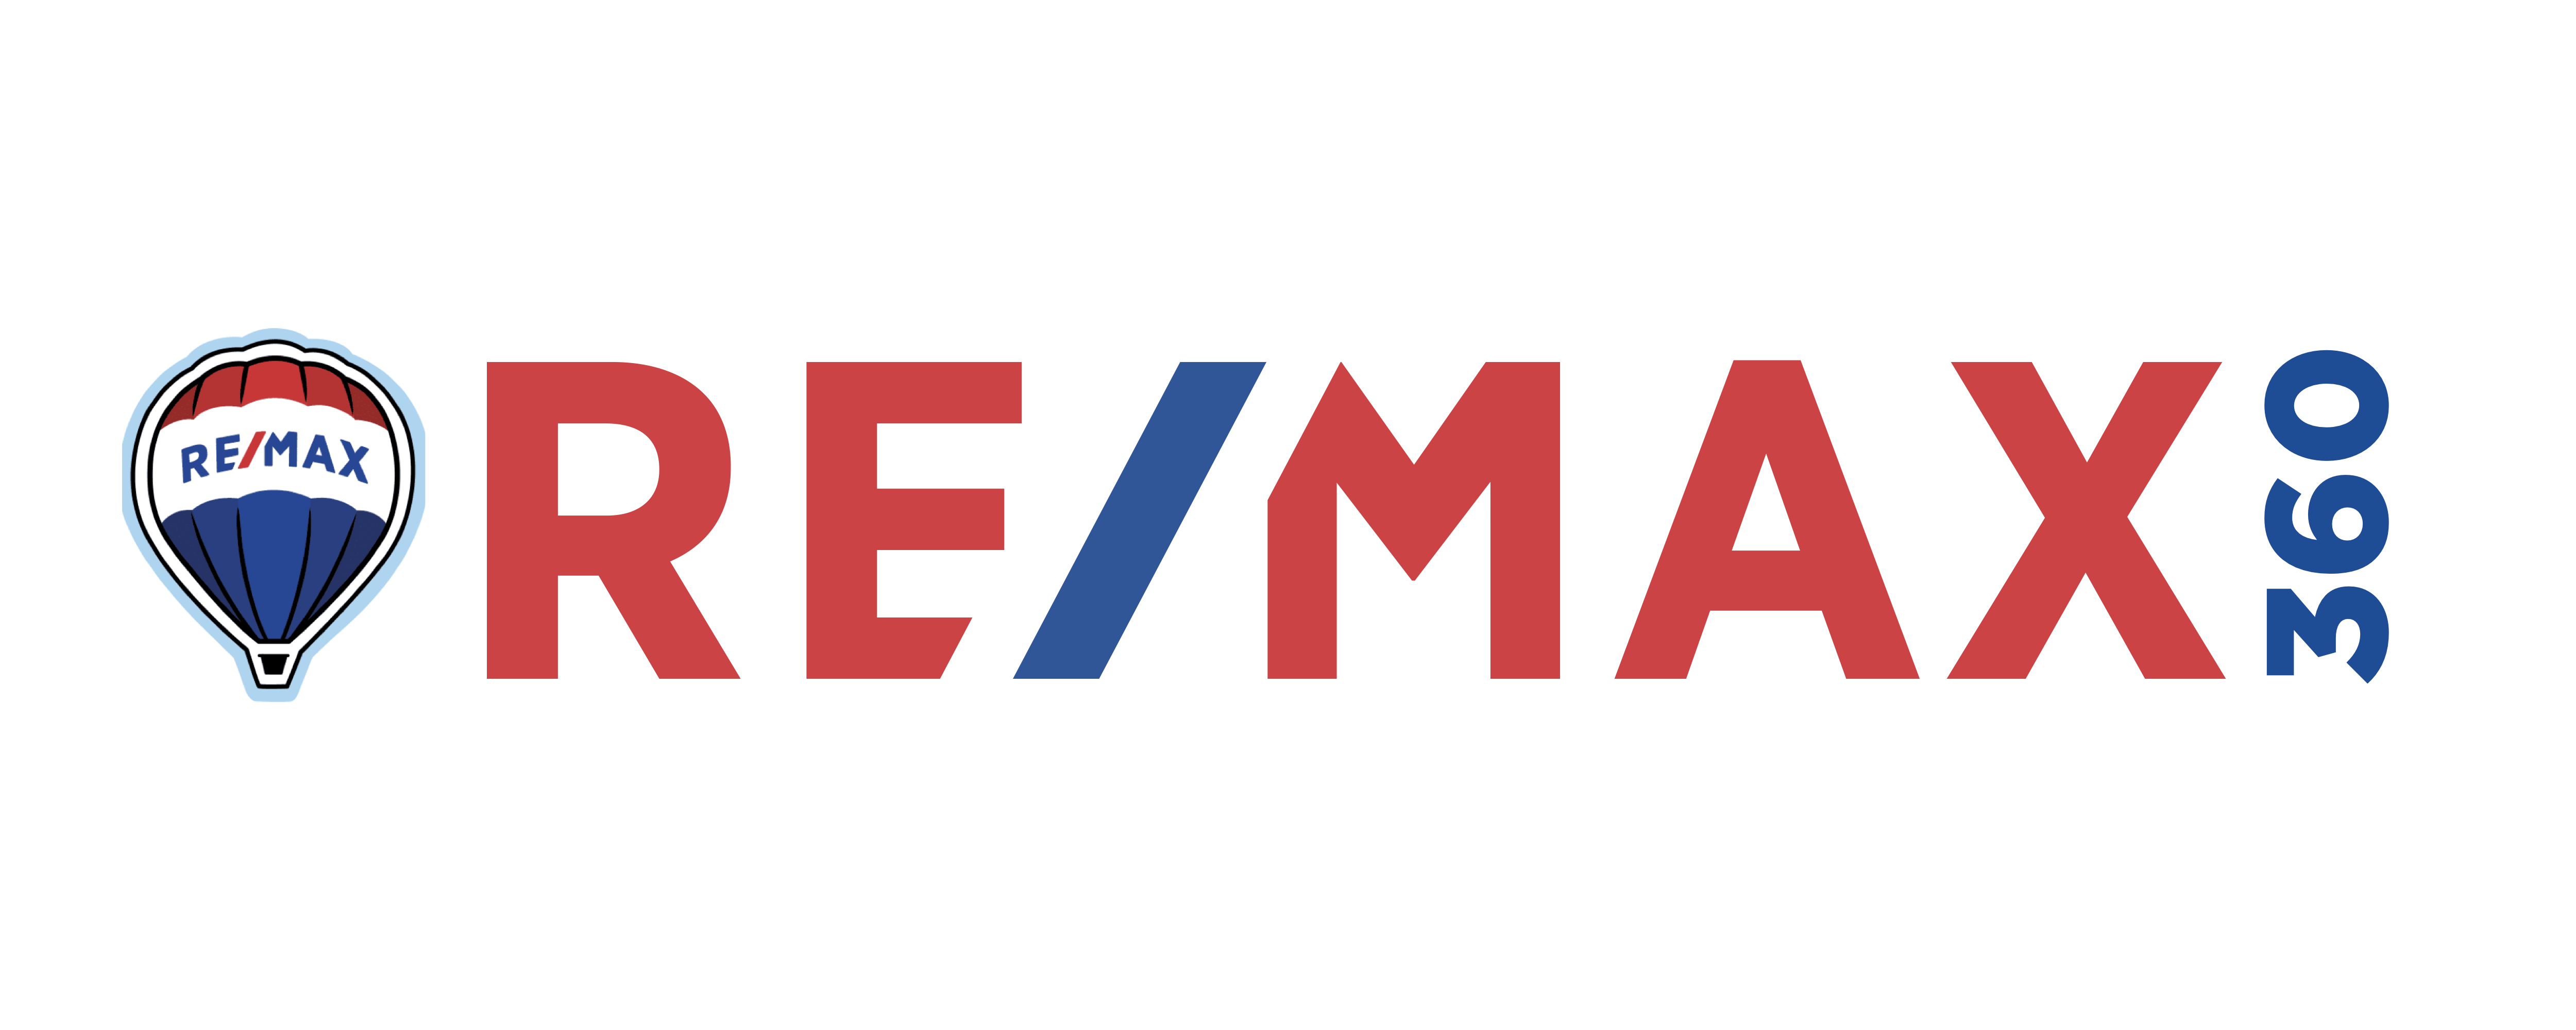 REMAX 360 word and balloon logo